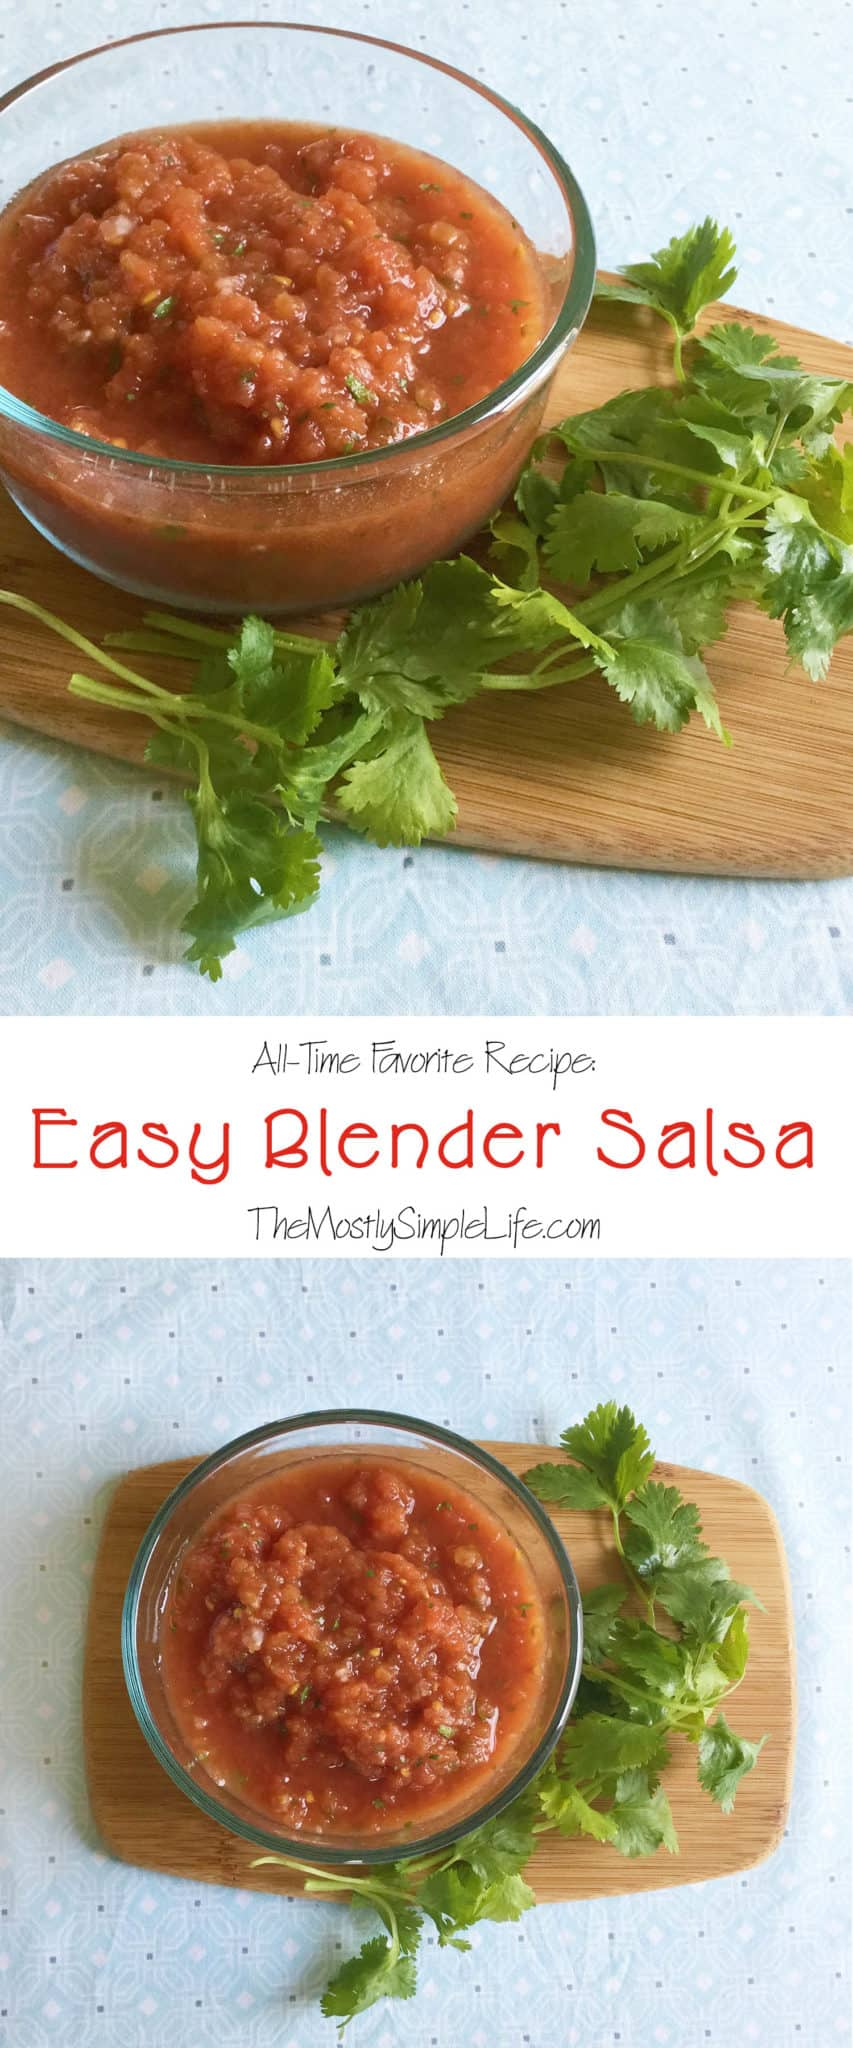 This homemade salsa recipe is my favorite! It's so easy and super quick to make in the blender. It tastes so fresh even though I cheat and use a few canned ingredients. I make it every time people come over and people rave about it!